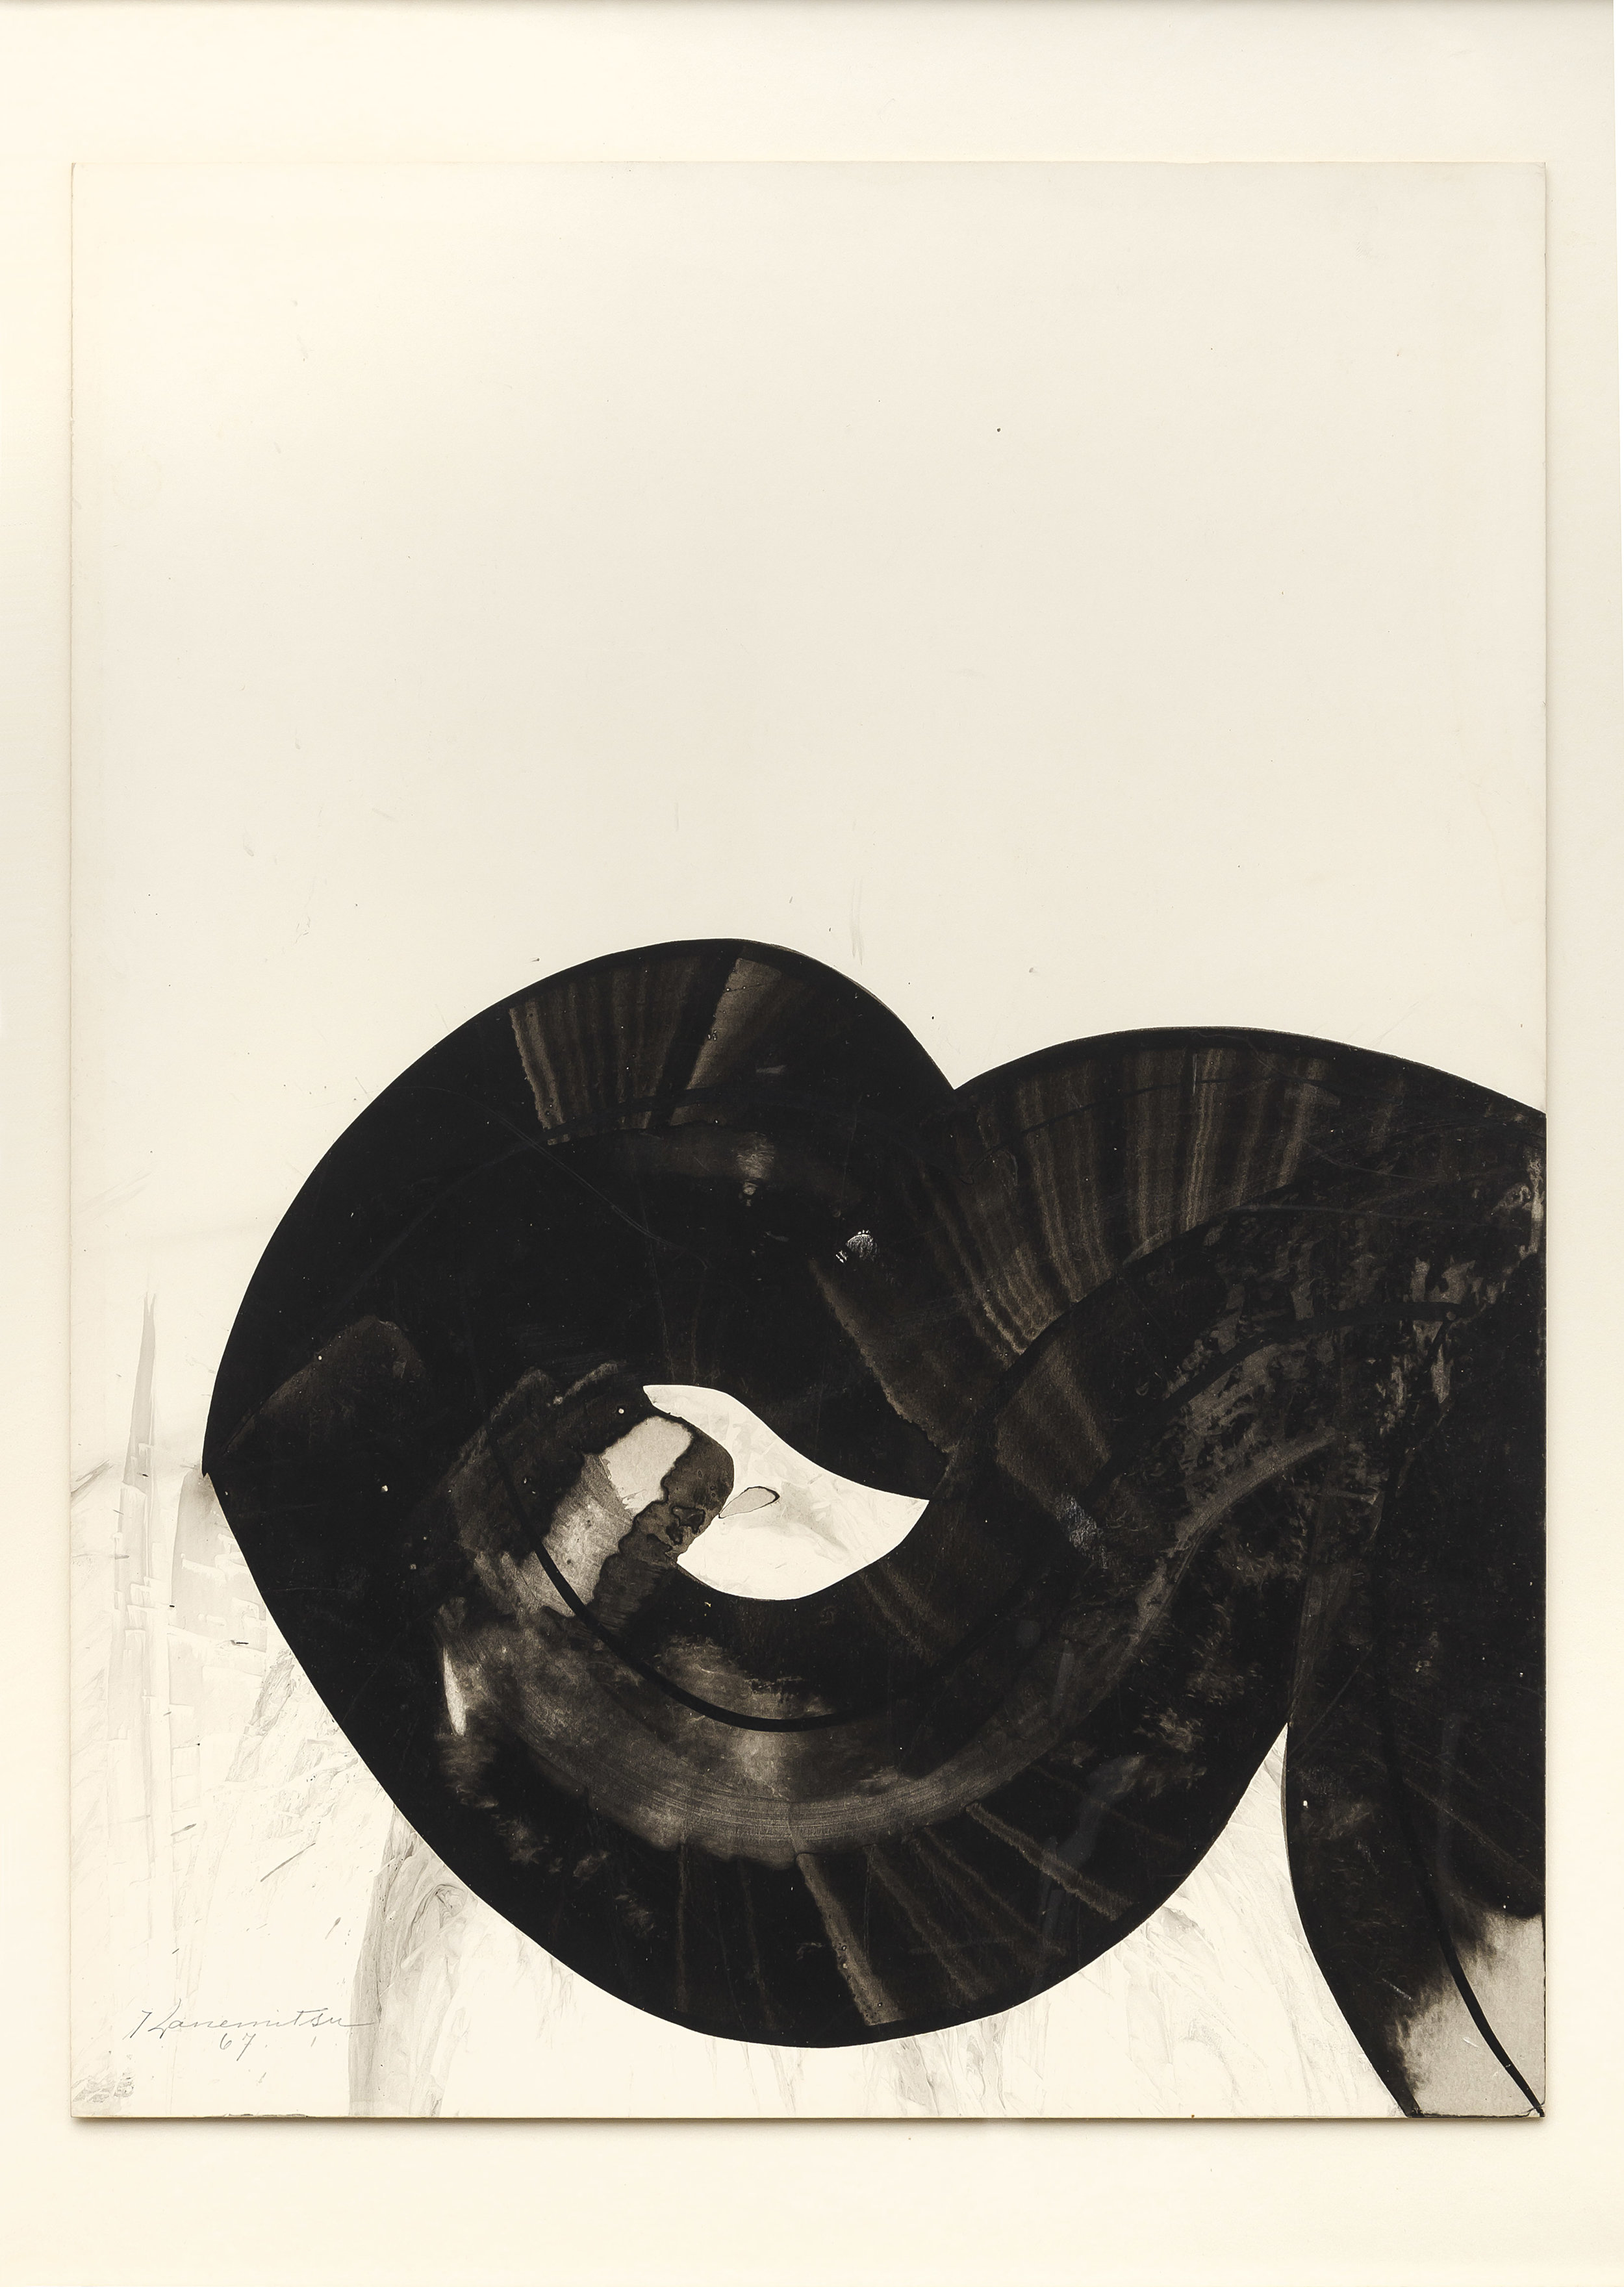 18-19   1967  sumi ink on paper  20 x 15 inches, 50.8 x 38.1 centimeters